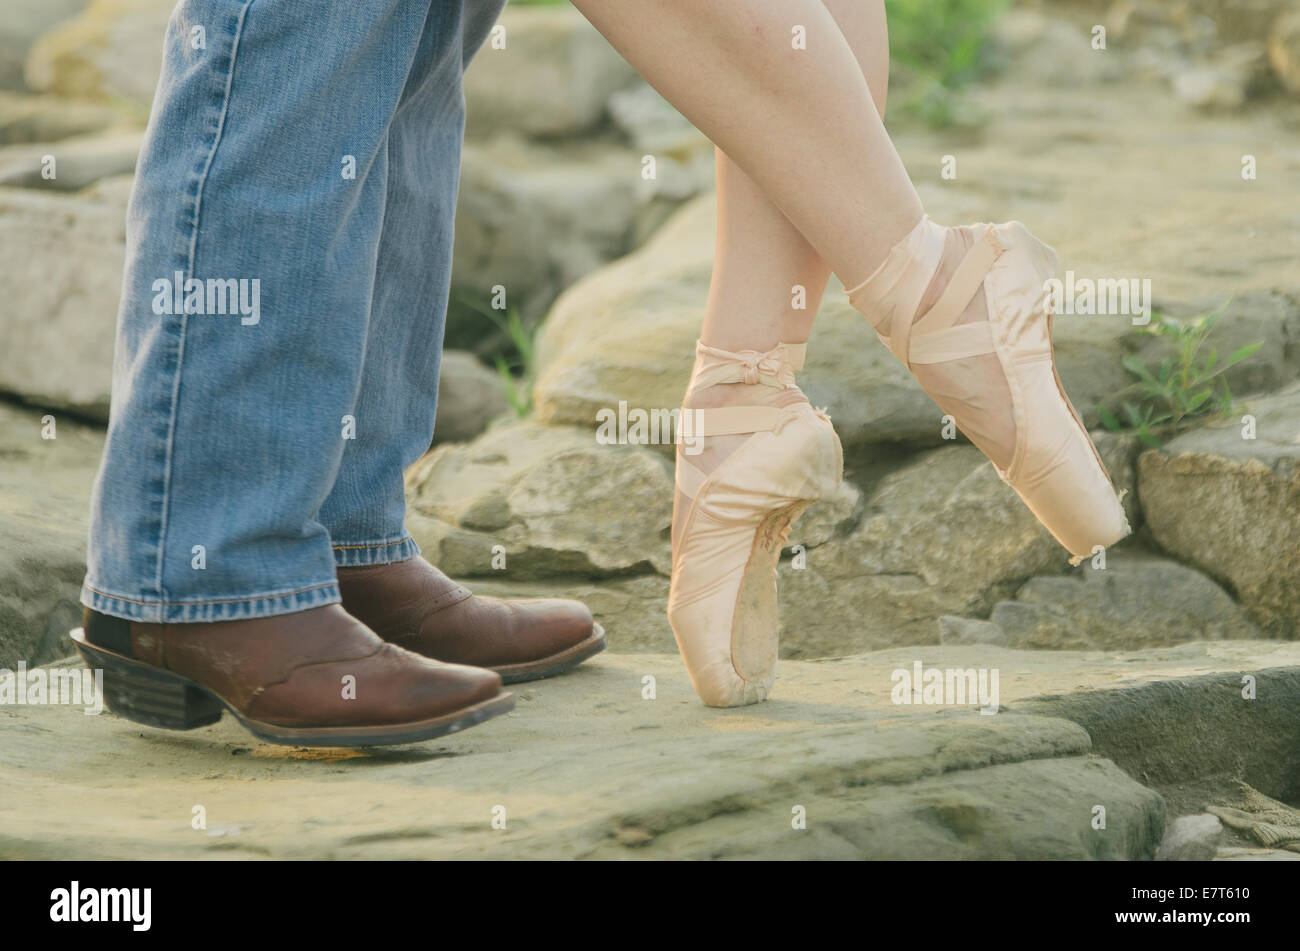 Detail Of A Man On Cowboy Boots And A Woman Wearing Ballet Shoes